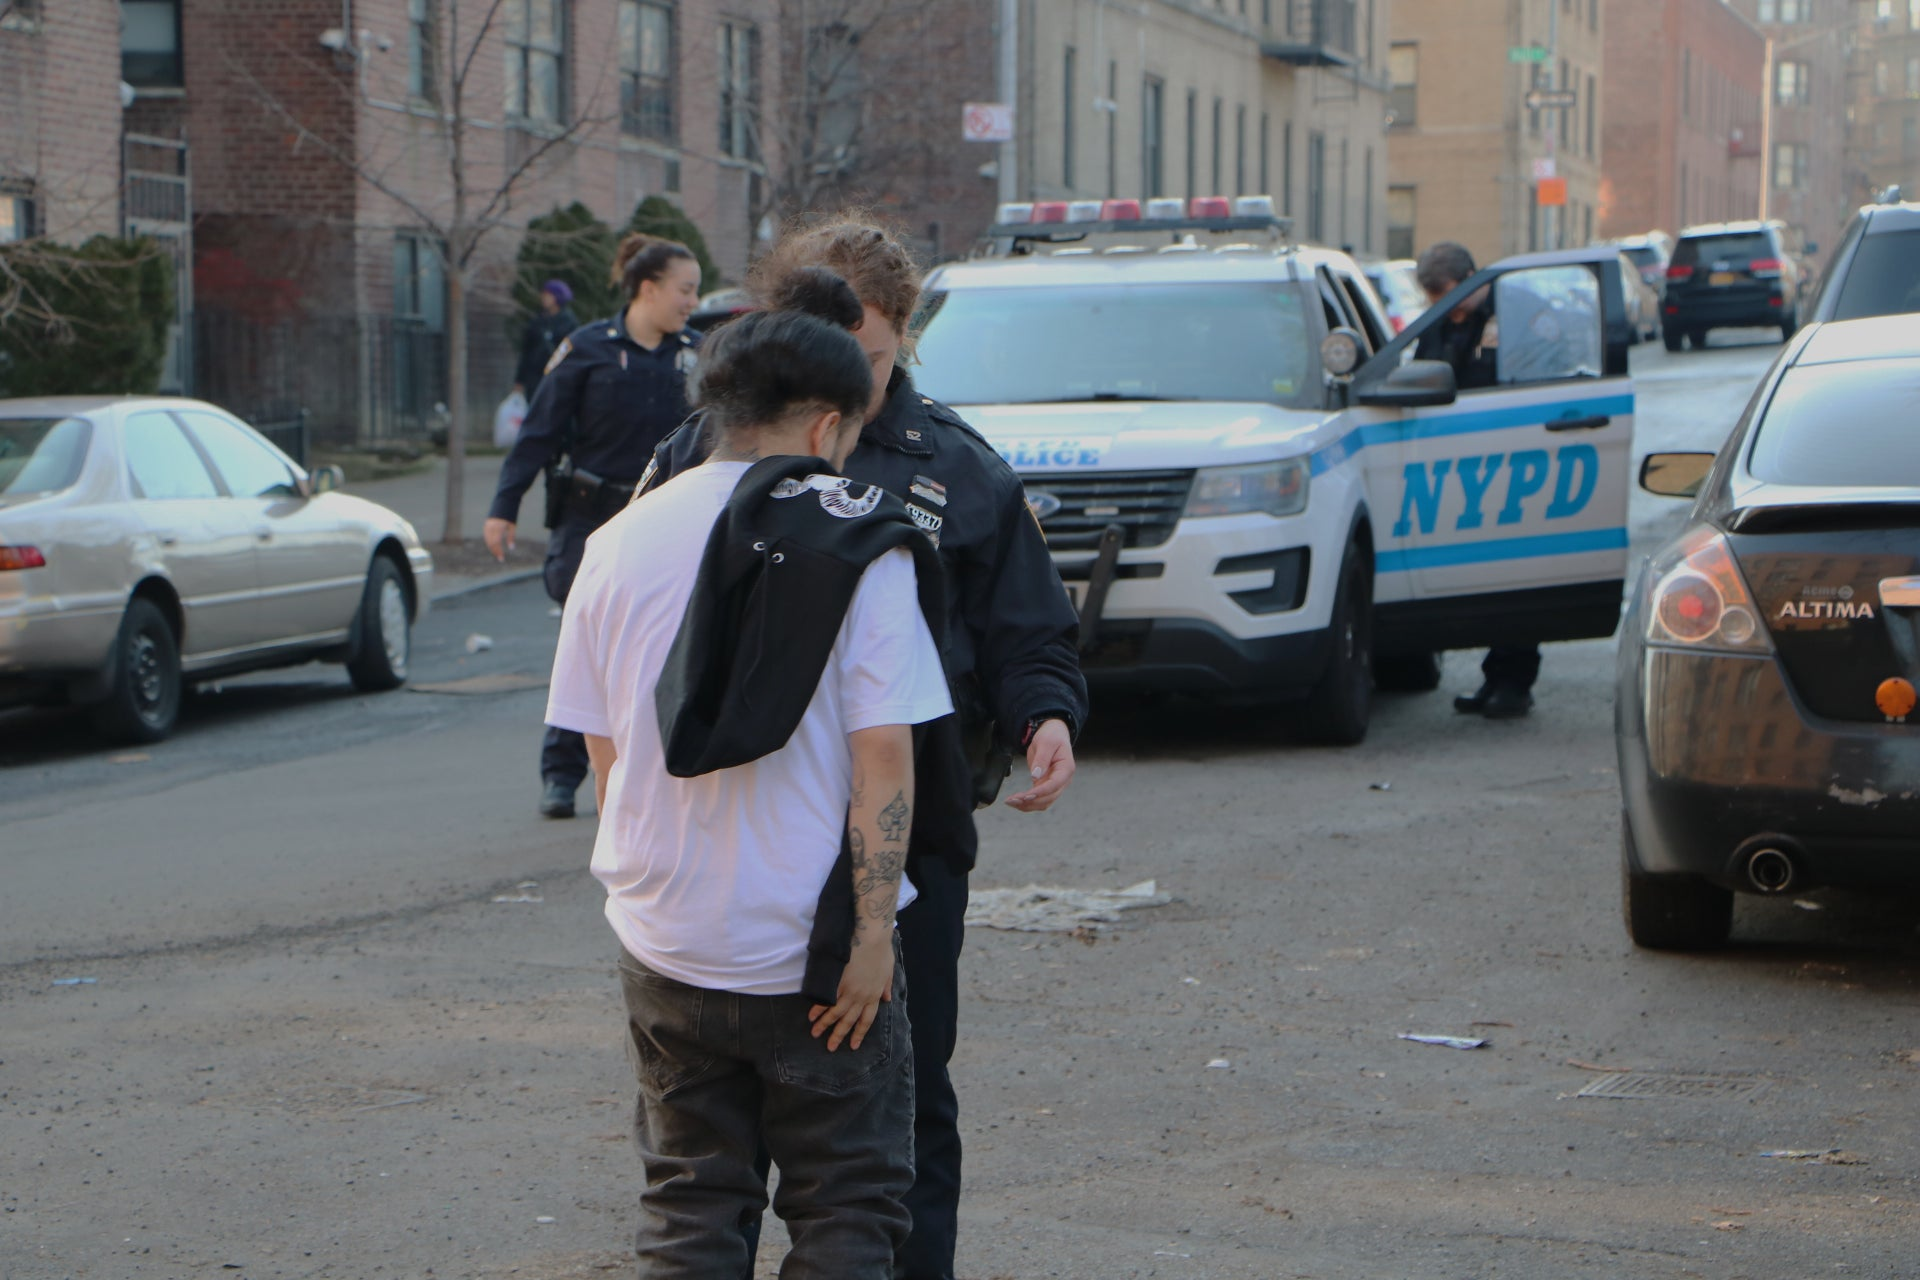 V4NY NYPD Harassment During Photoshoot in The Bronx